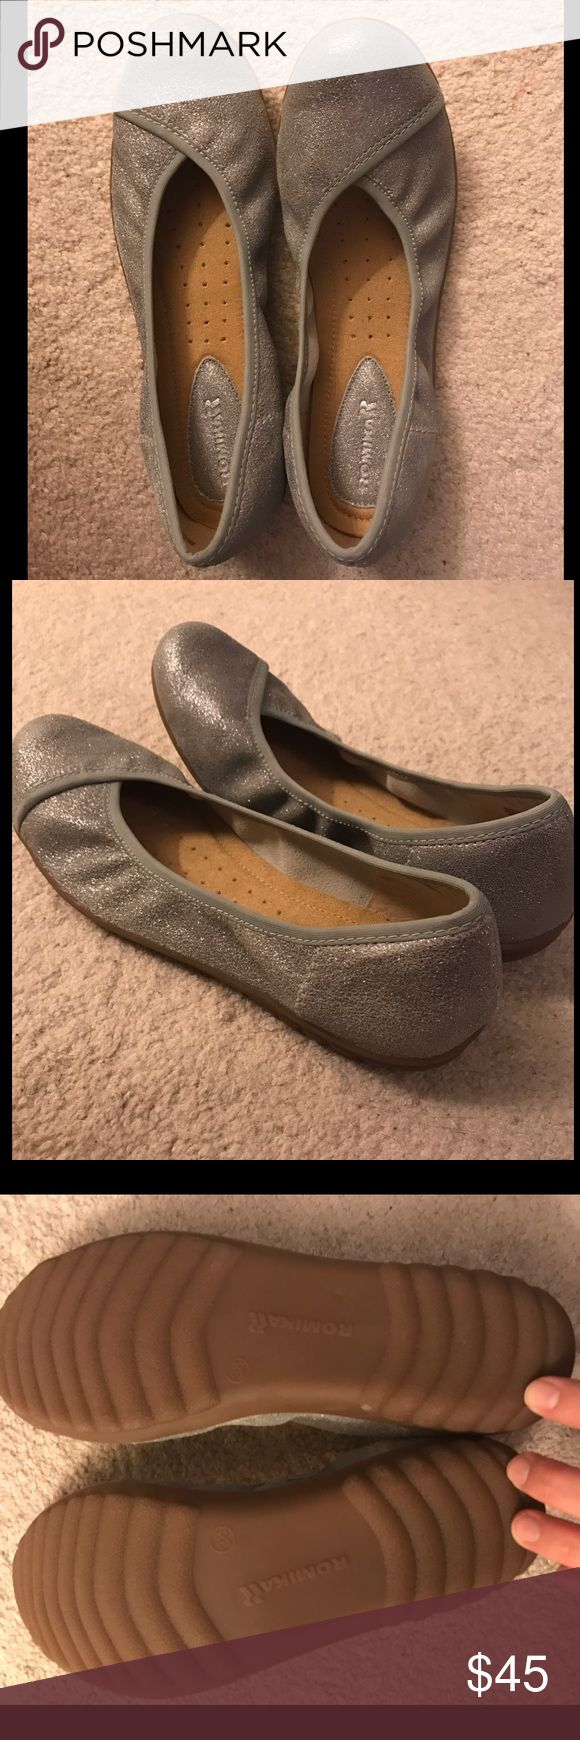 BRAND NEW Romika silver sparkle flats BRAND NEW Romika silver sparkle flats, size 7.5 new, never worn Romika Shoes Flats & Loafers